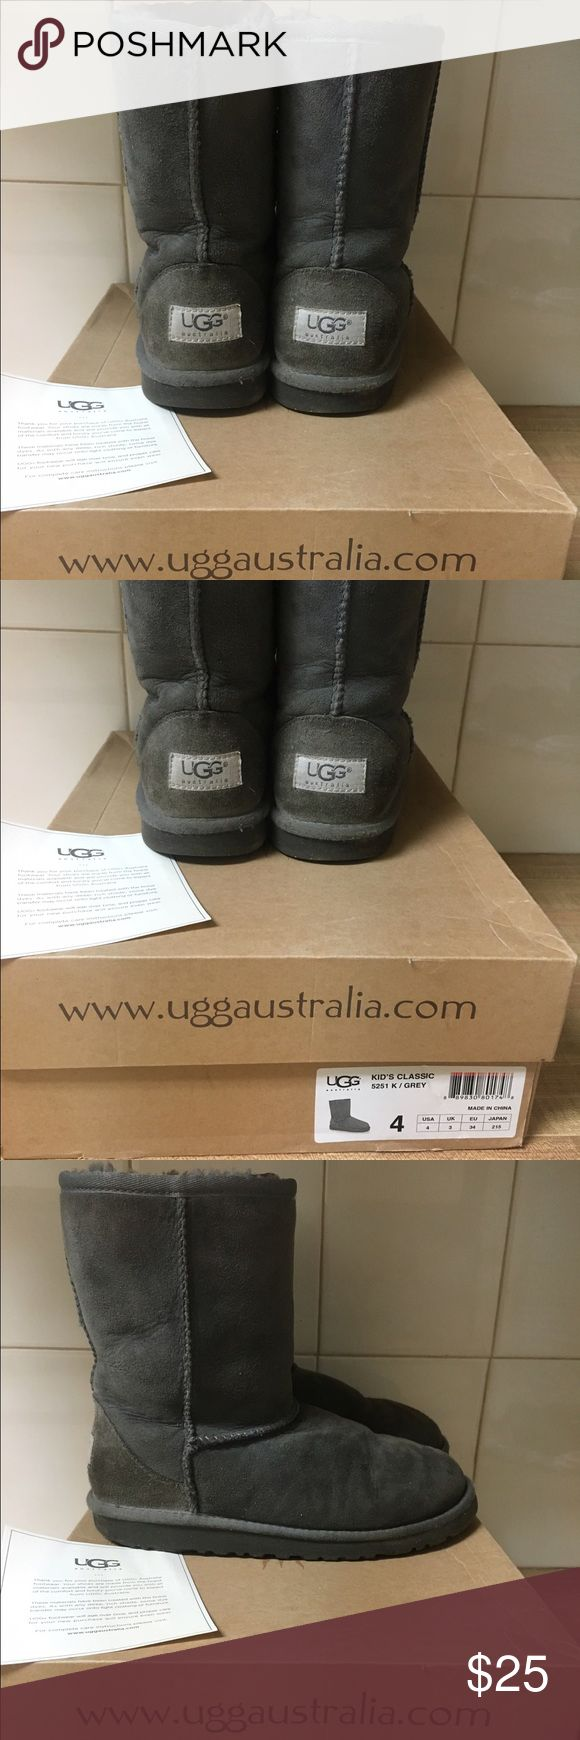 GREY KIDS SIZE 4 SHORT UGGS Authentic grey short kids size 4 Uggs ! Fits a women's size 6! Worn for a season in good worn condition as shown in pictures. Purchased originally for $100! UGG Shoes Winter & Rain Boots